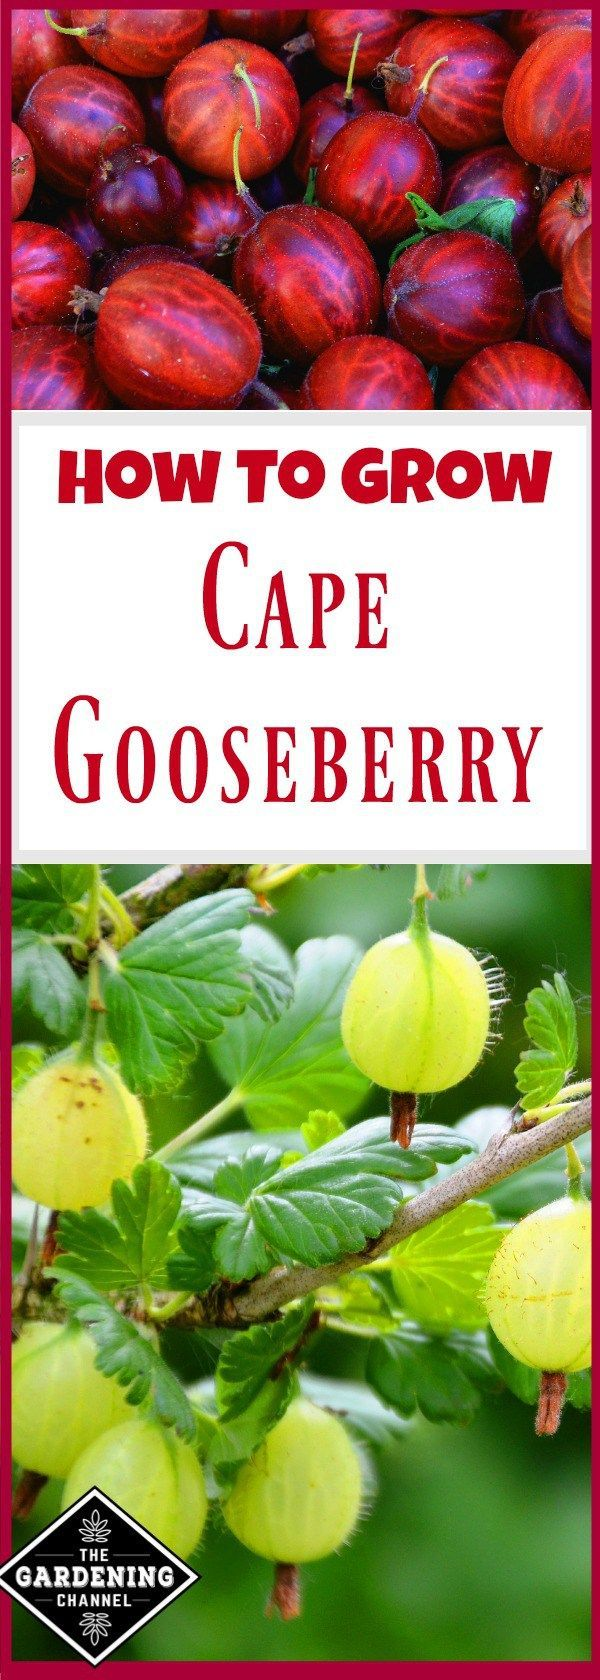 Growing Gooseberry. This plant is often called by other names and grows in the wild. It's worth planting because it is easy to grow in almost any environment. Try this in your garden. #greenhousefarming